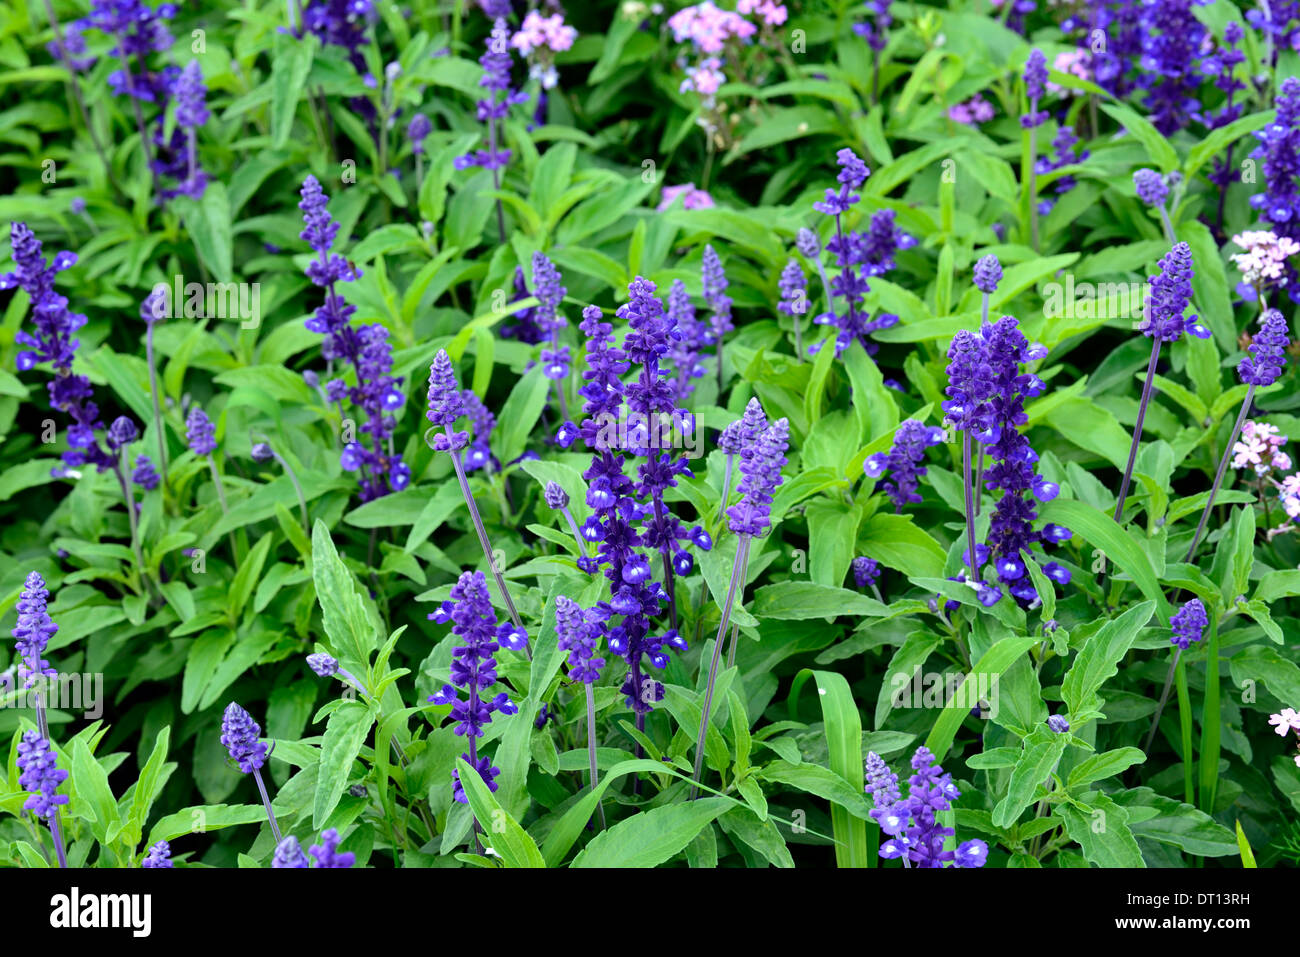 Salvia farinacea plant stock photos salvia farinacea plant stock salvia farinacea victoria purple flowers bloom blossom officinale plant sage sages flower flowering perennial herbaceous mightylinksfo